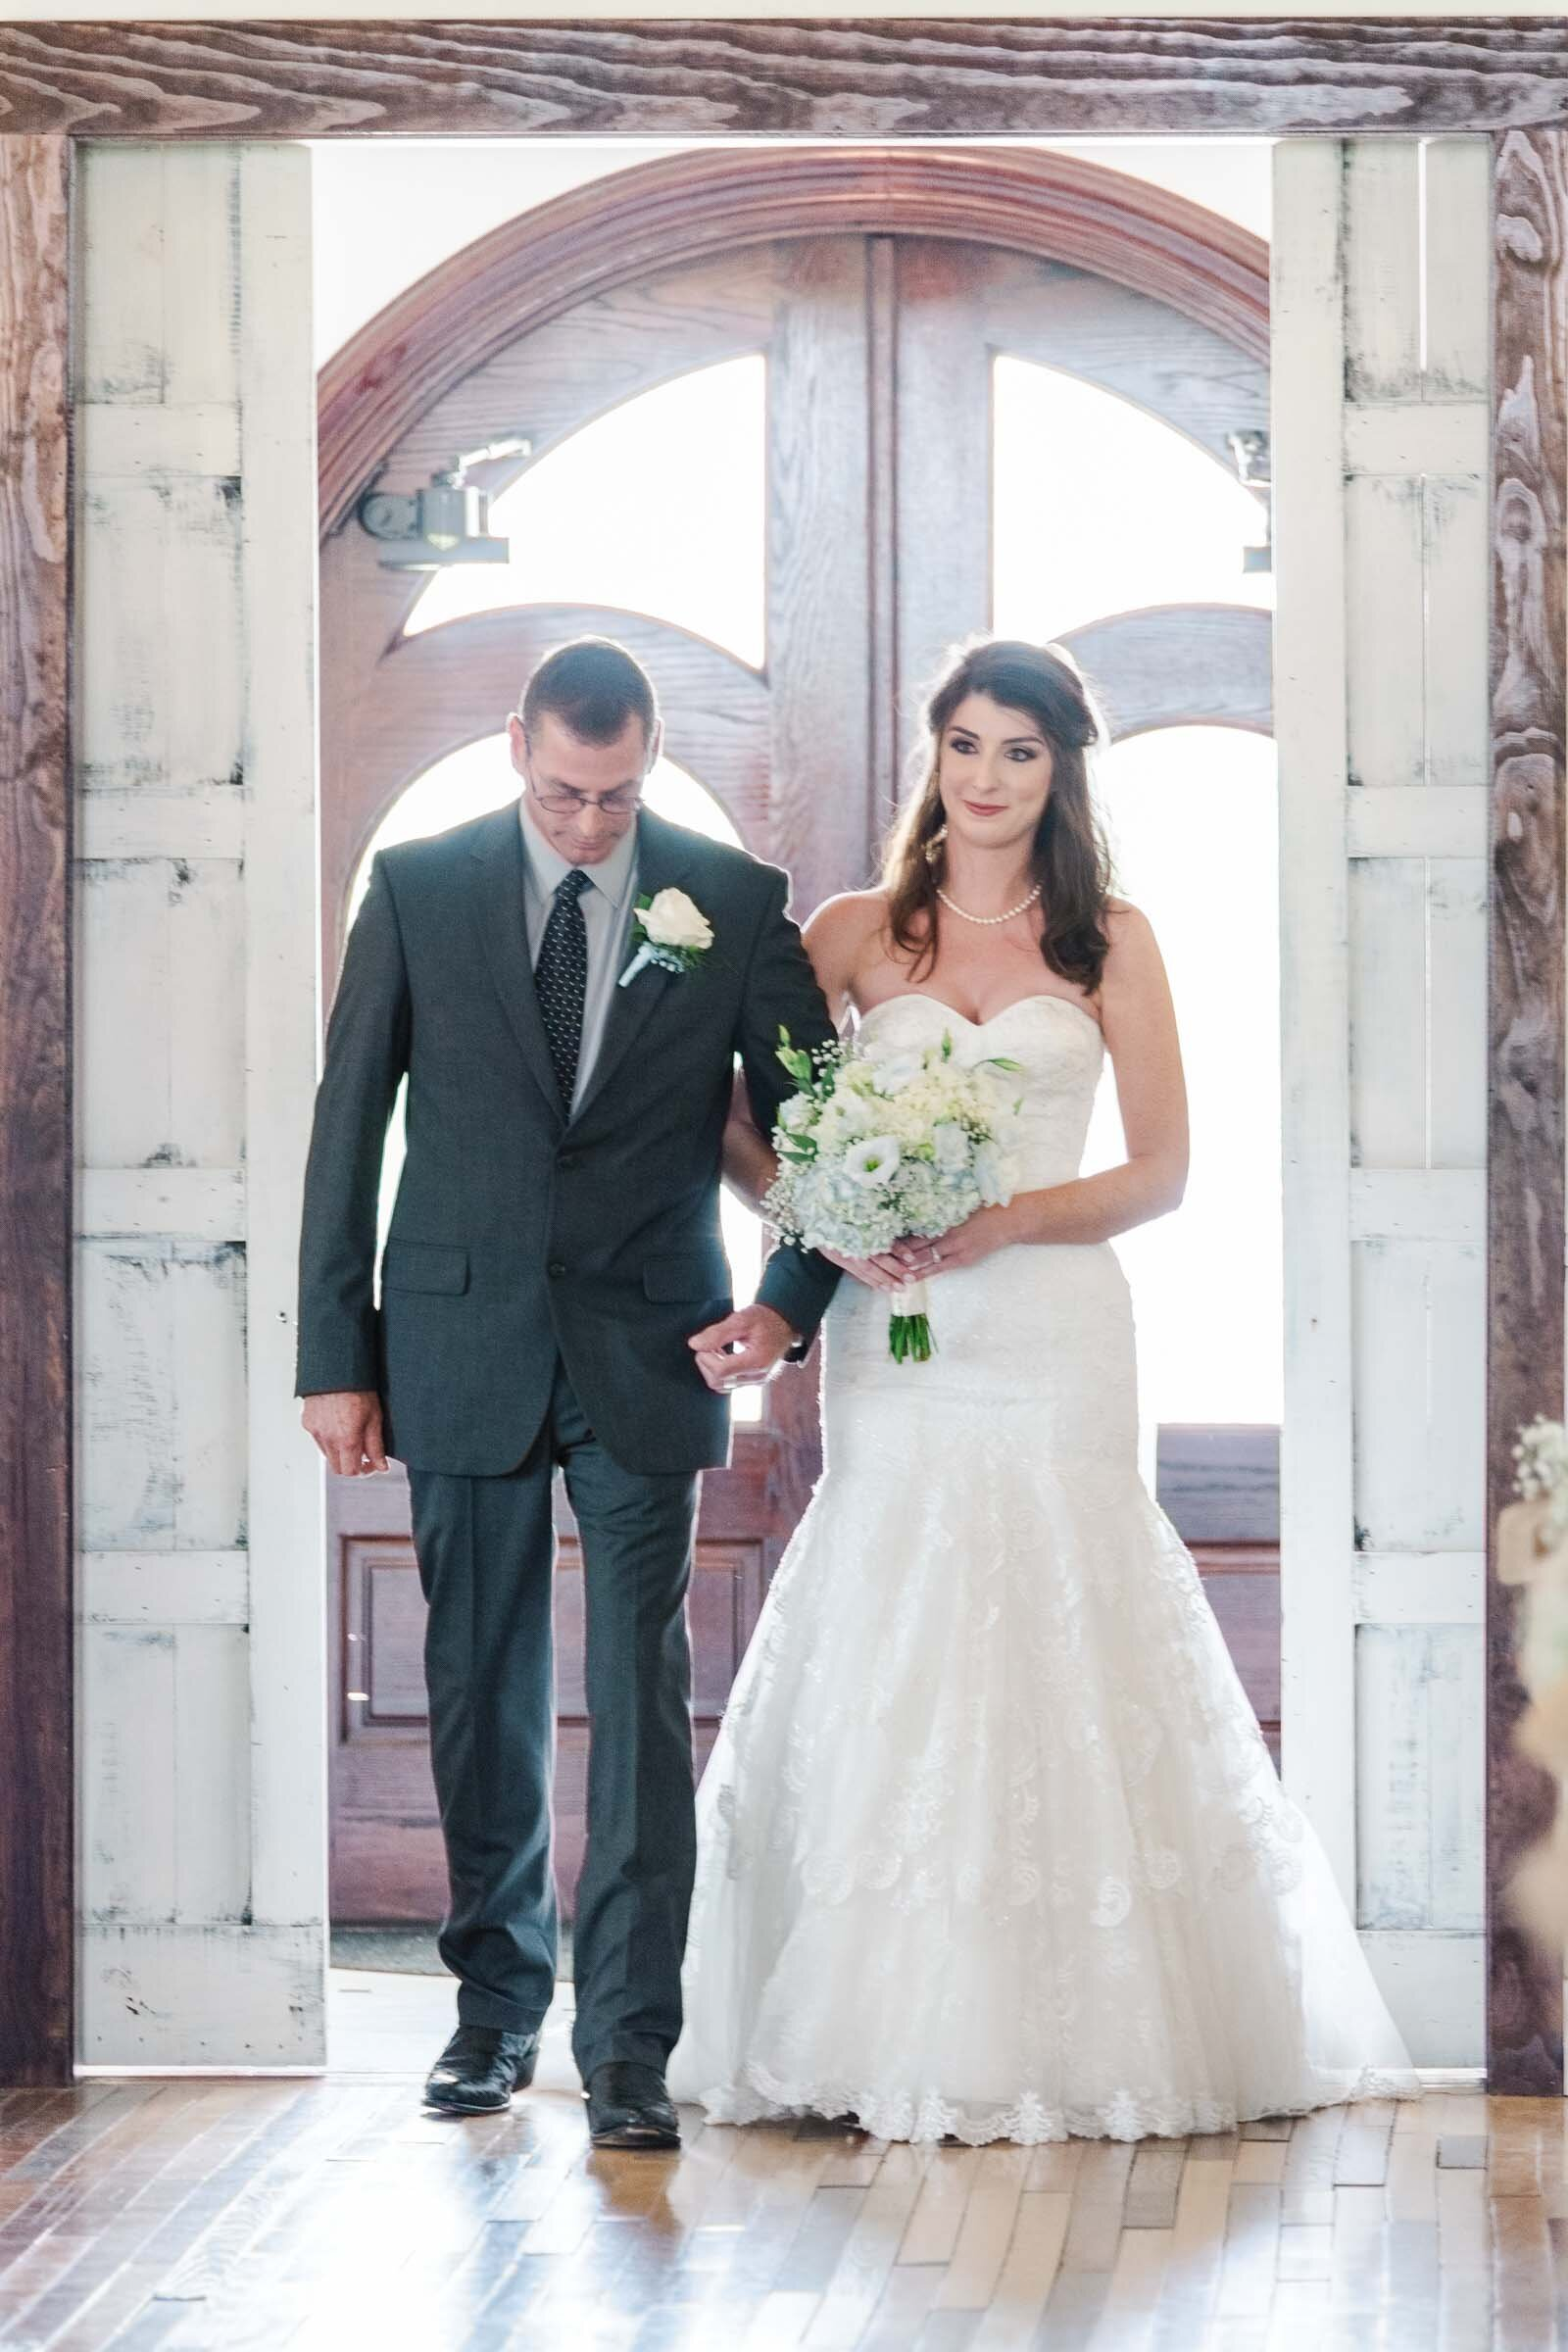 JenSymes_Emilee-Hoyt-Wedding-640.jpg